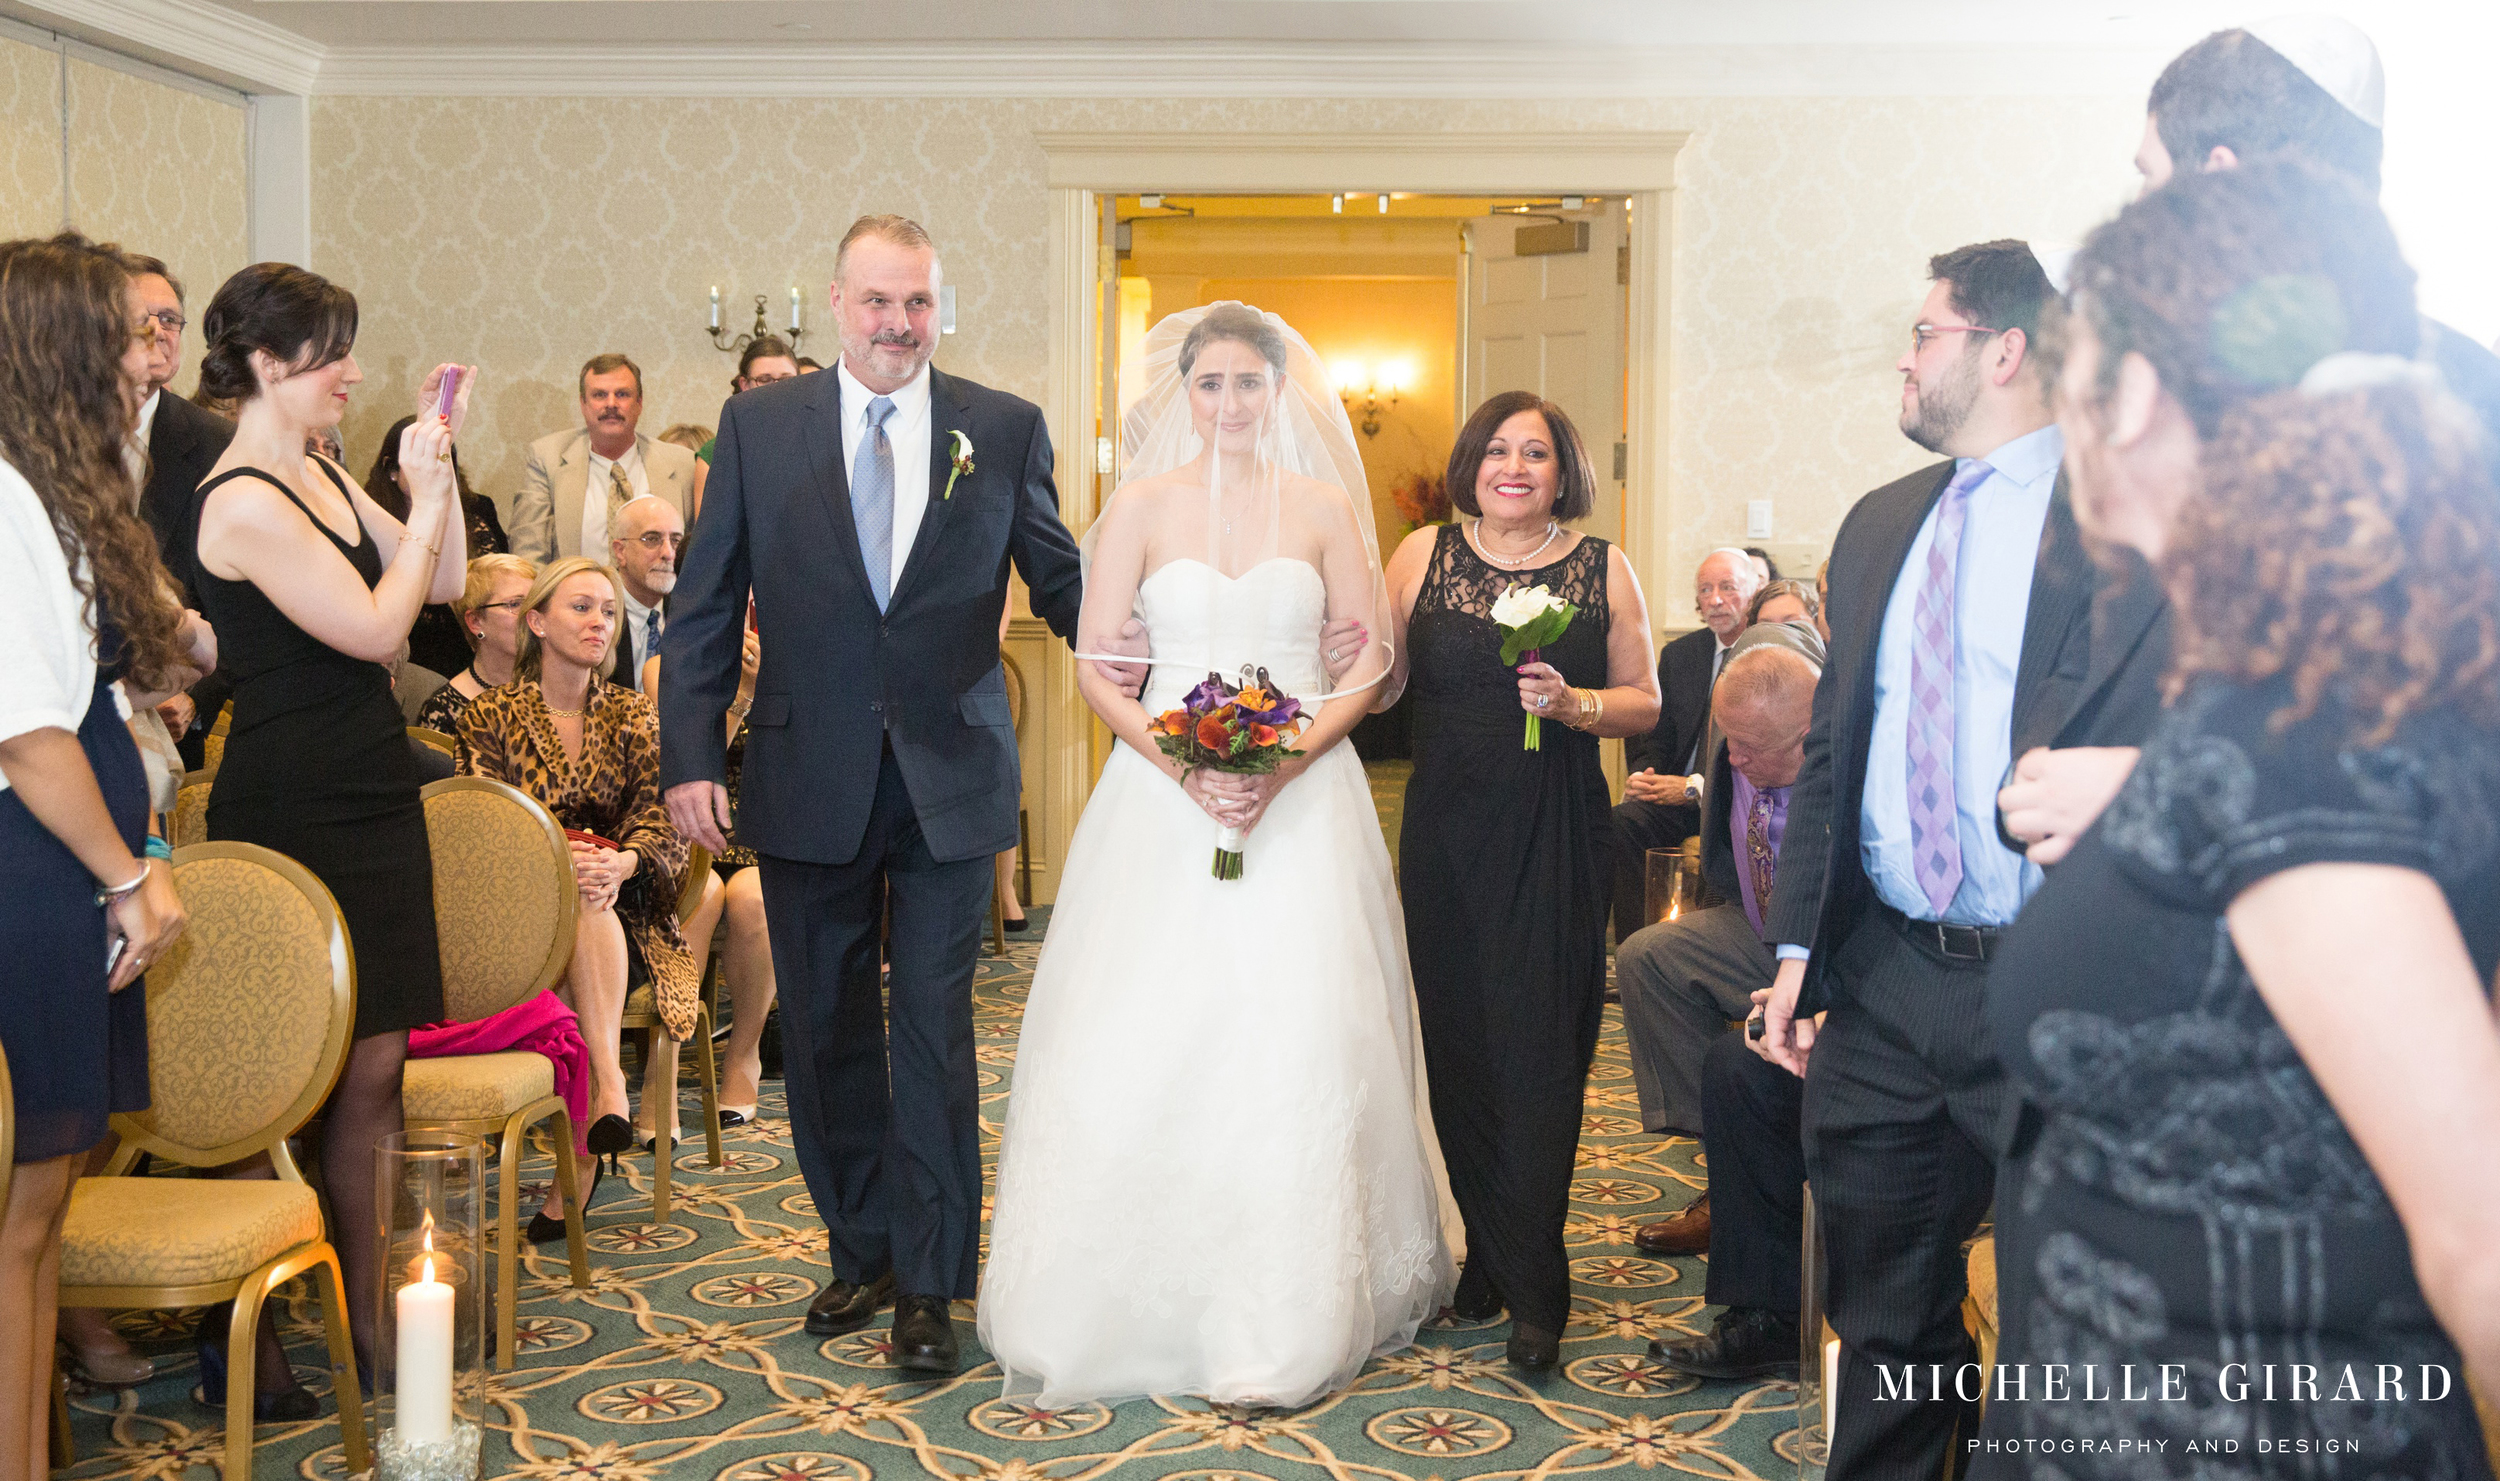 LordJefferyInnWedding_AmherstMa_MichelleGirardPhotography31.jpg